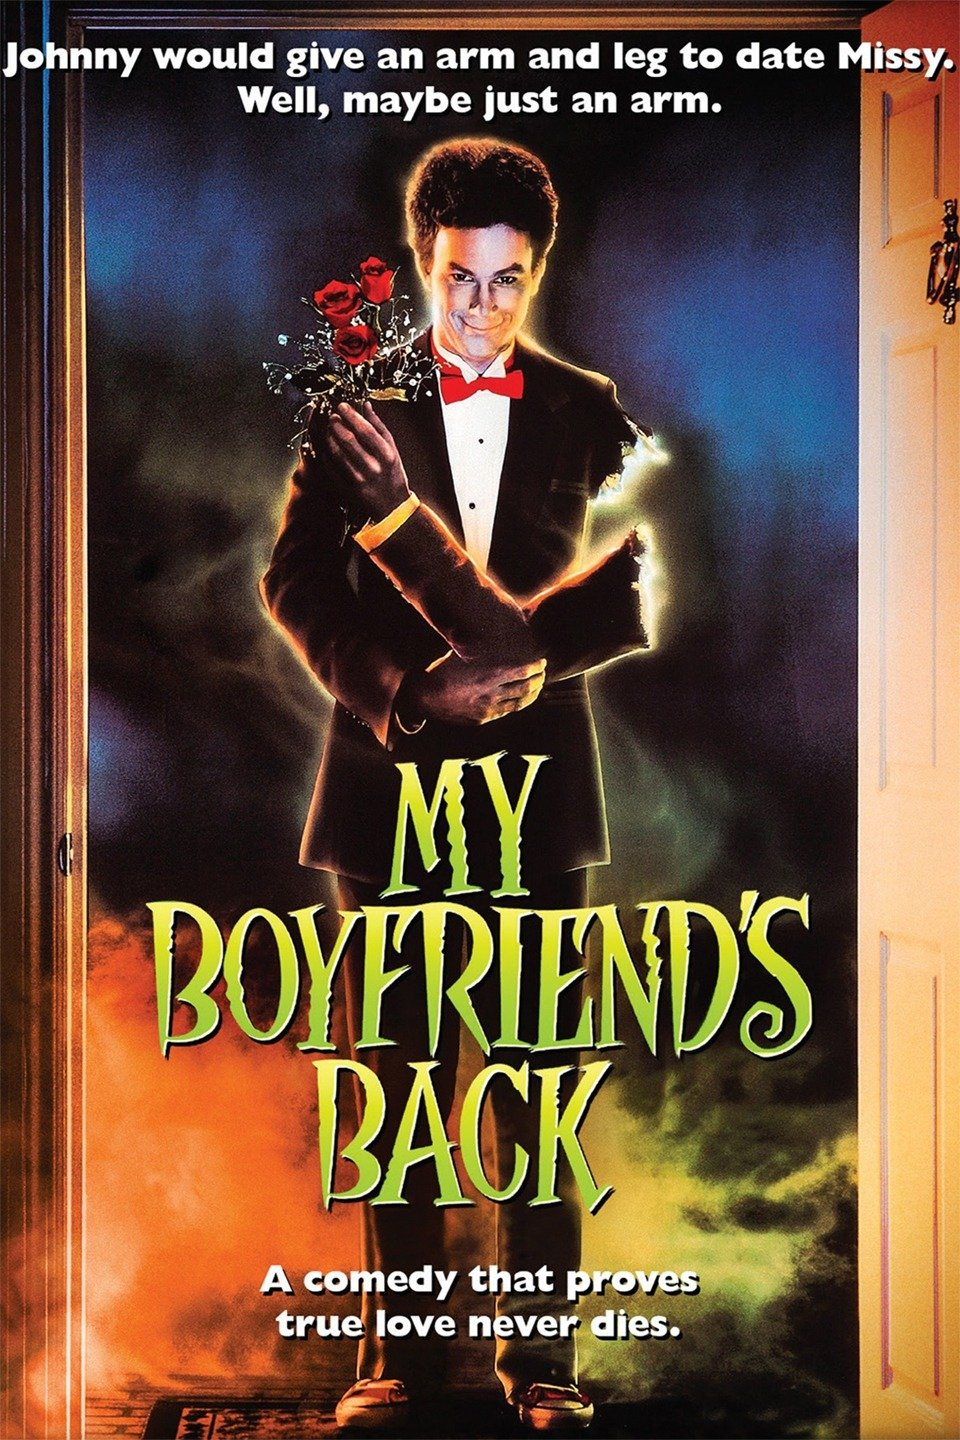 [Teen Terrors] MY BOYFRIEND'S BACK Rises From the Grave as a Moral Parable